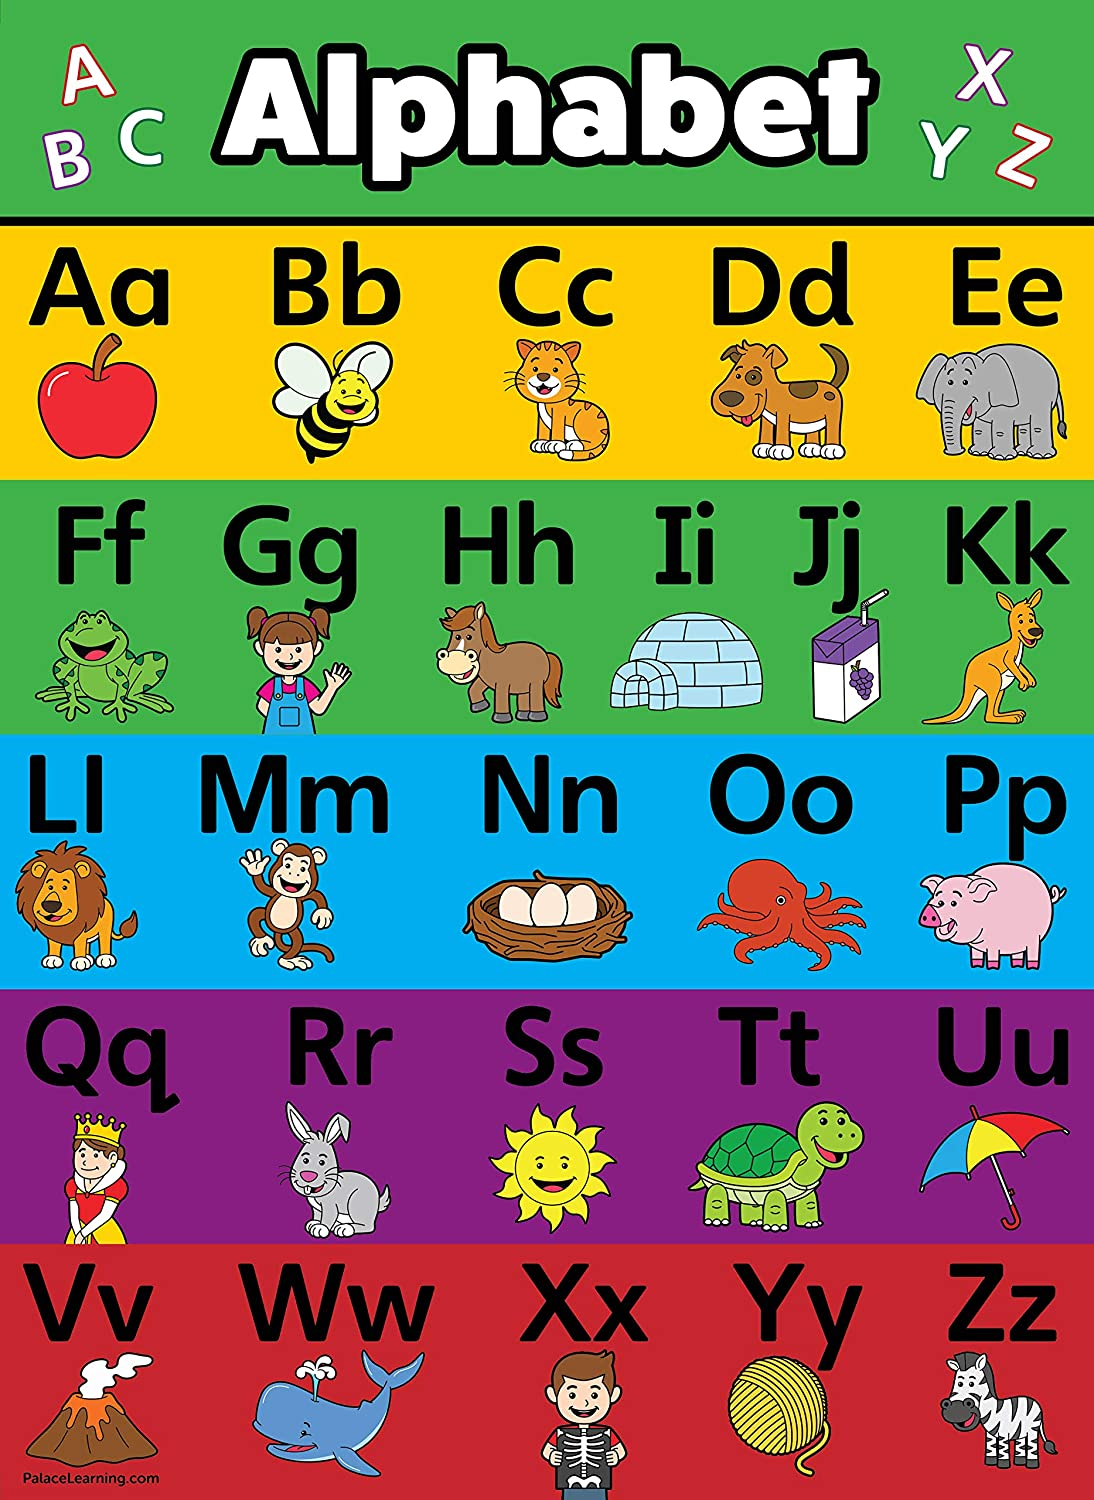 ABC Alphabet Poster Chart - LAMINATED Regular store 18 Double x Sided Cheap bargain 24